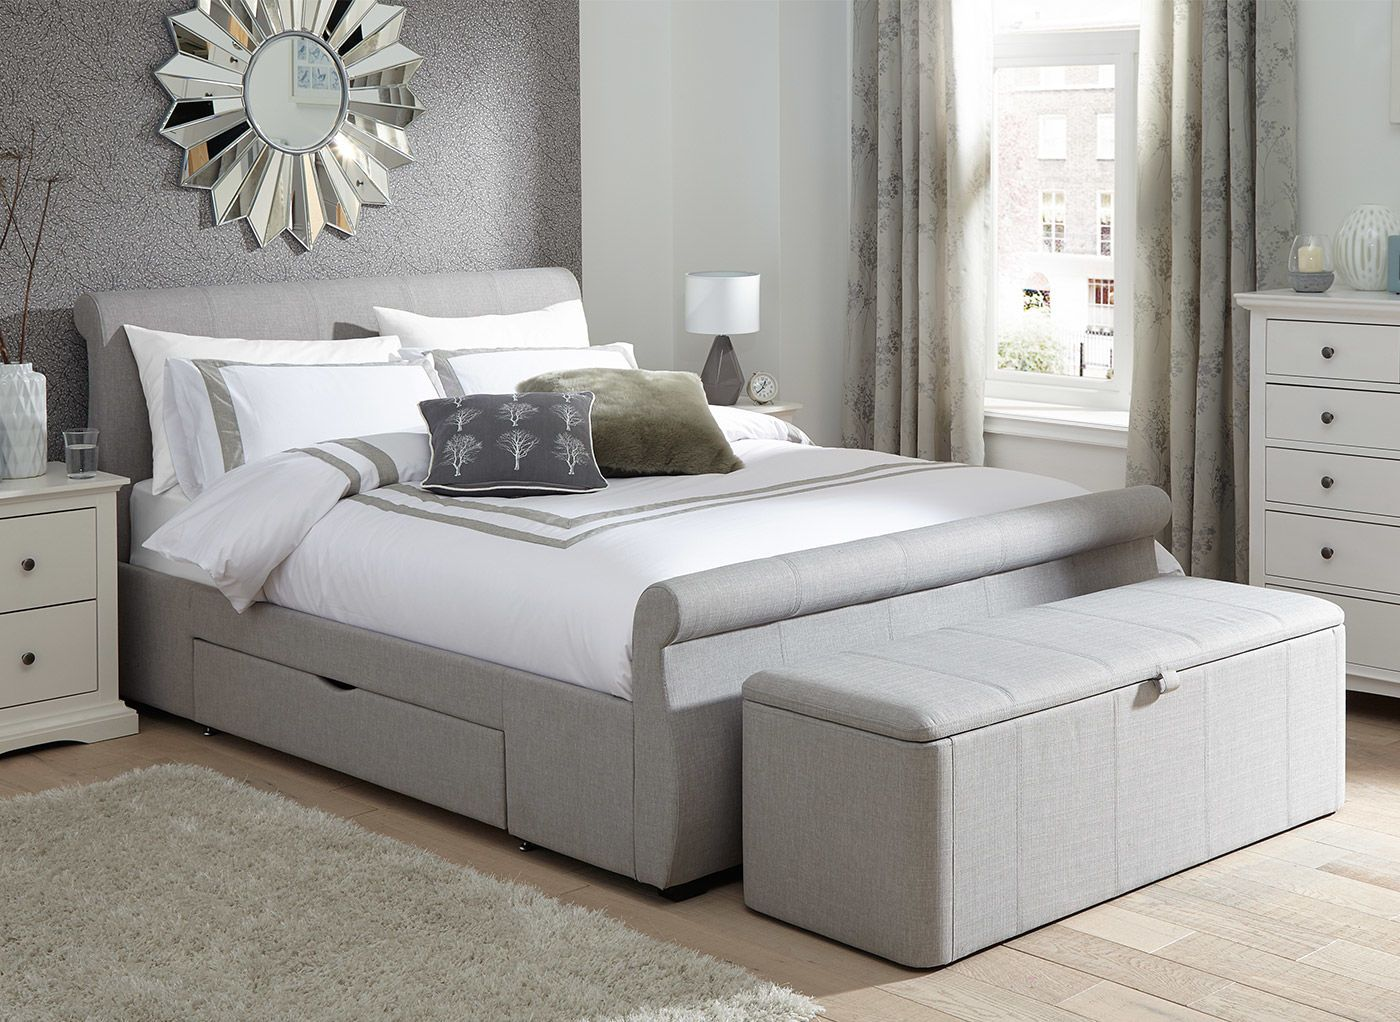 Lucia Upholstered Bed Frame Home Sweet Home